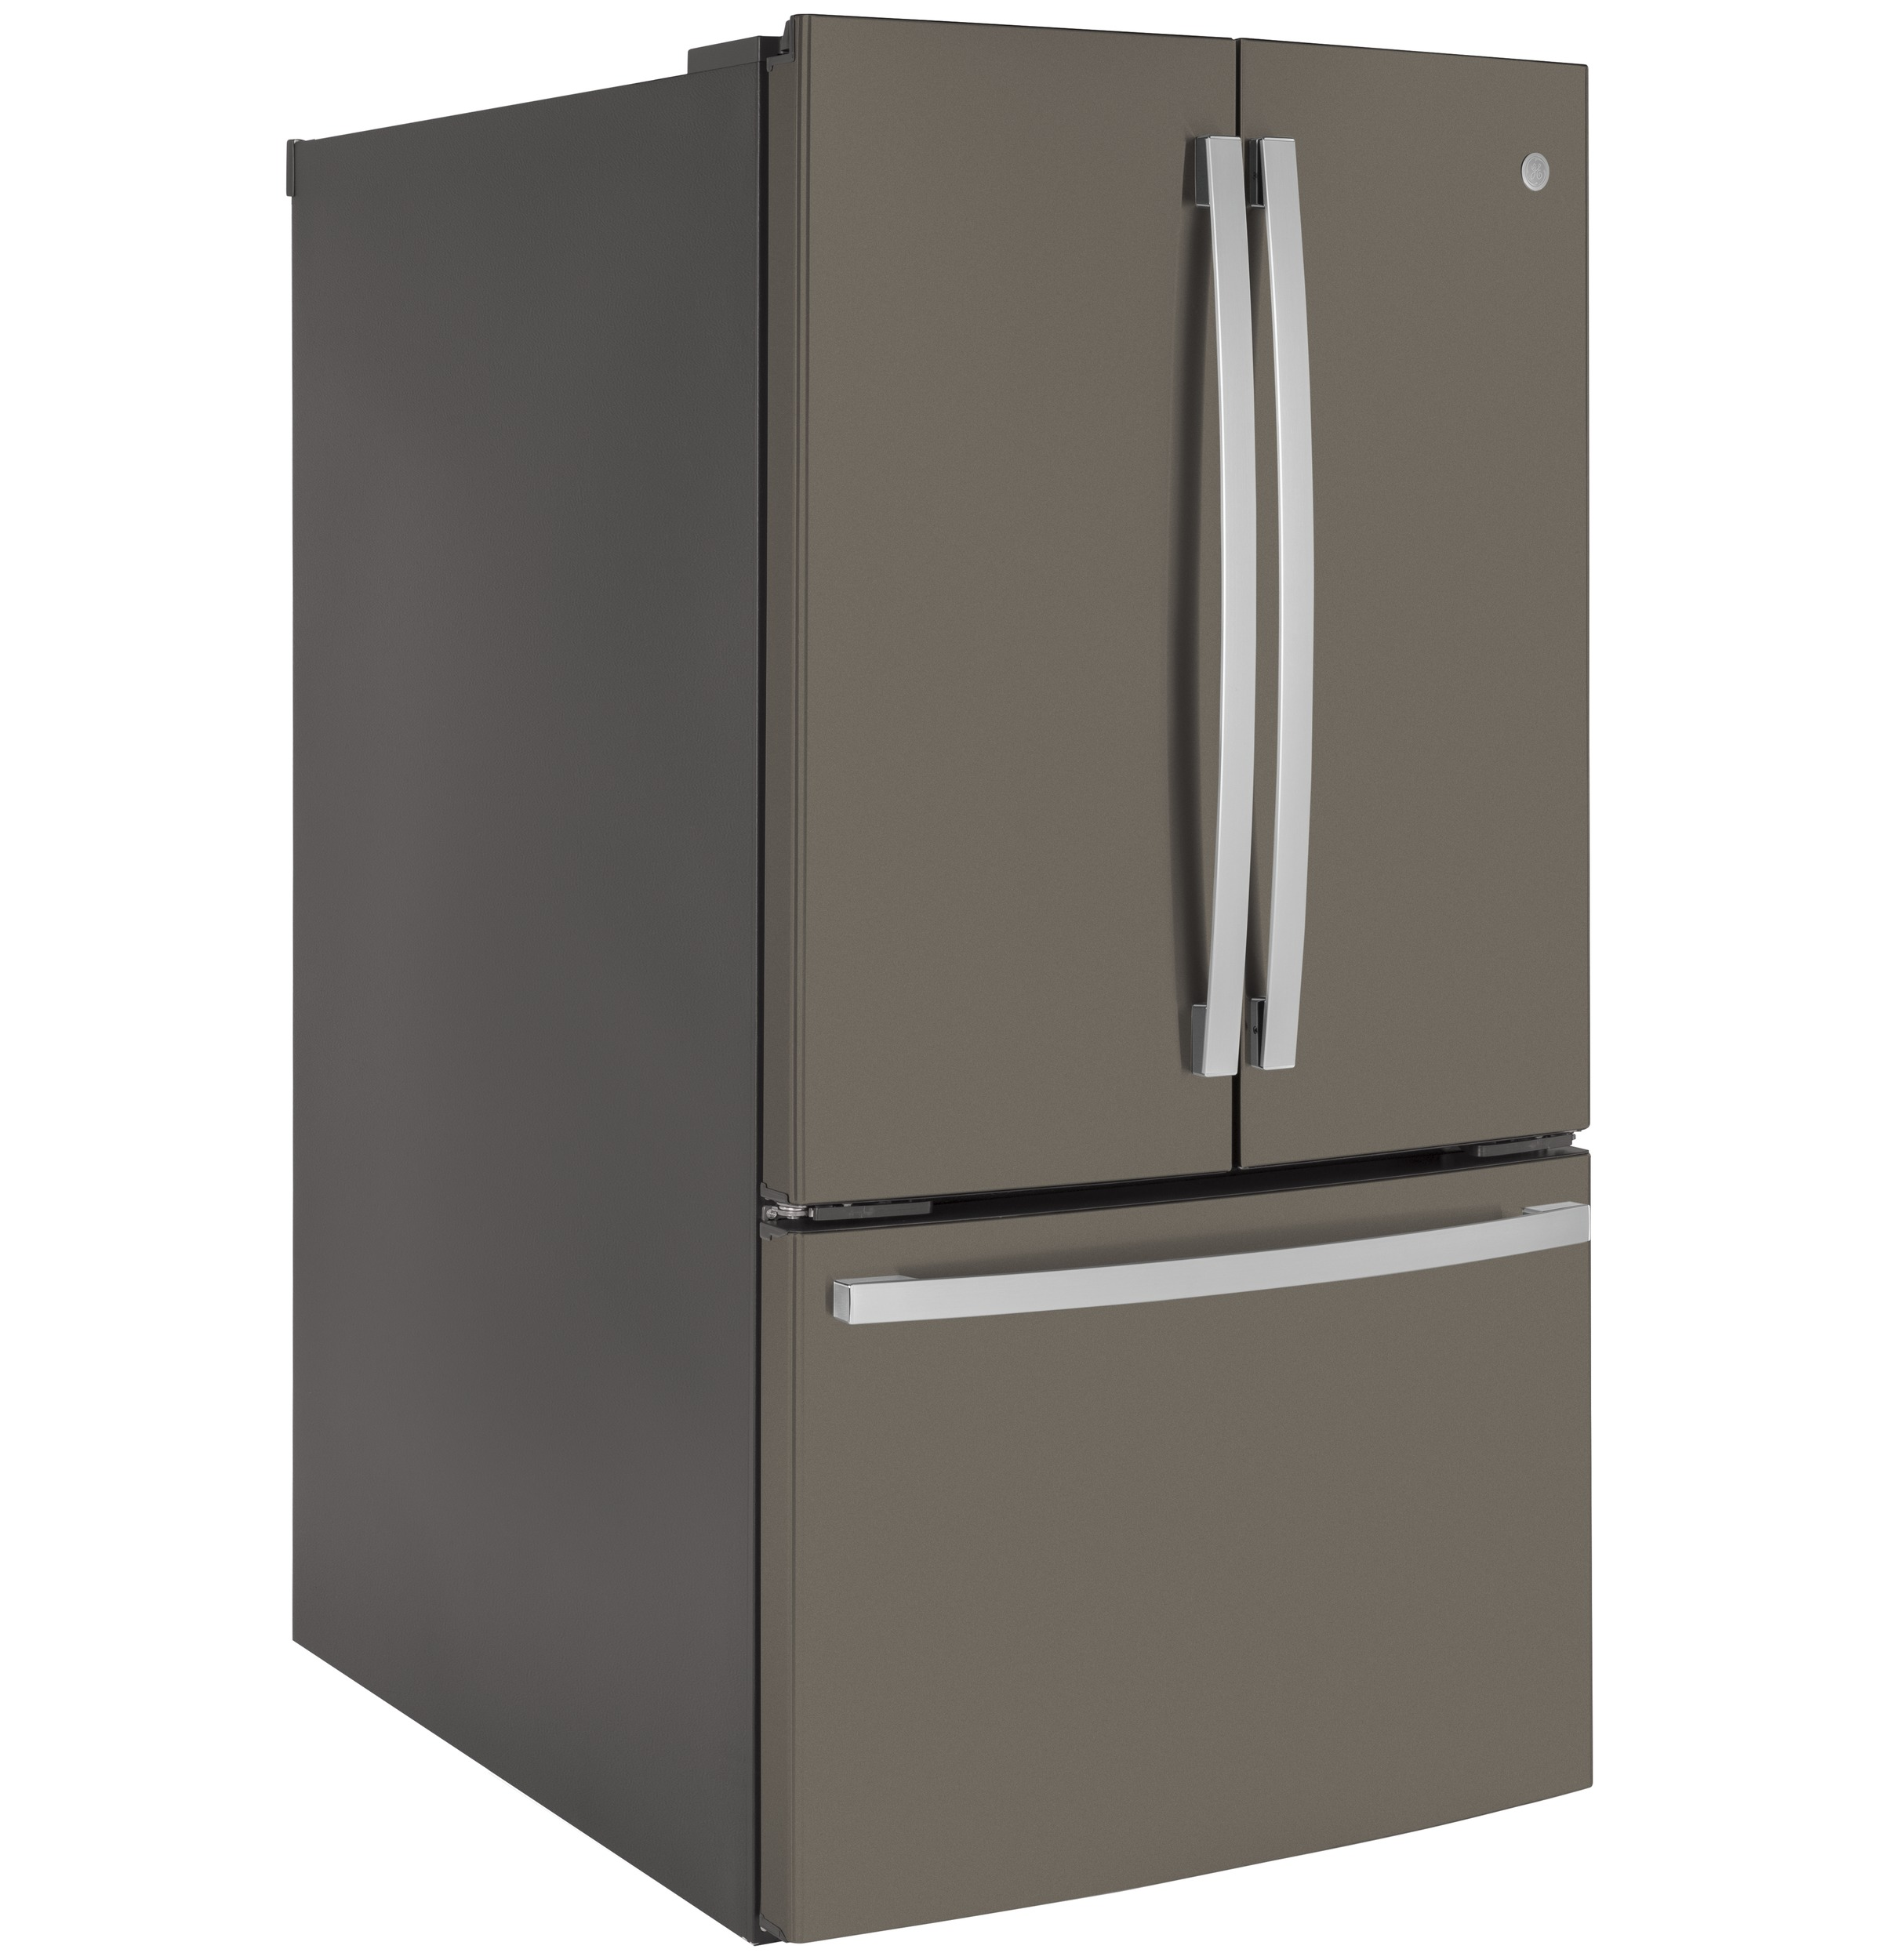 Model: GNE29GMKES | GE GE® ENERGY STAR® 28.7 Cu. Ft. French-Door Refrigerator